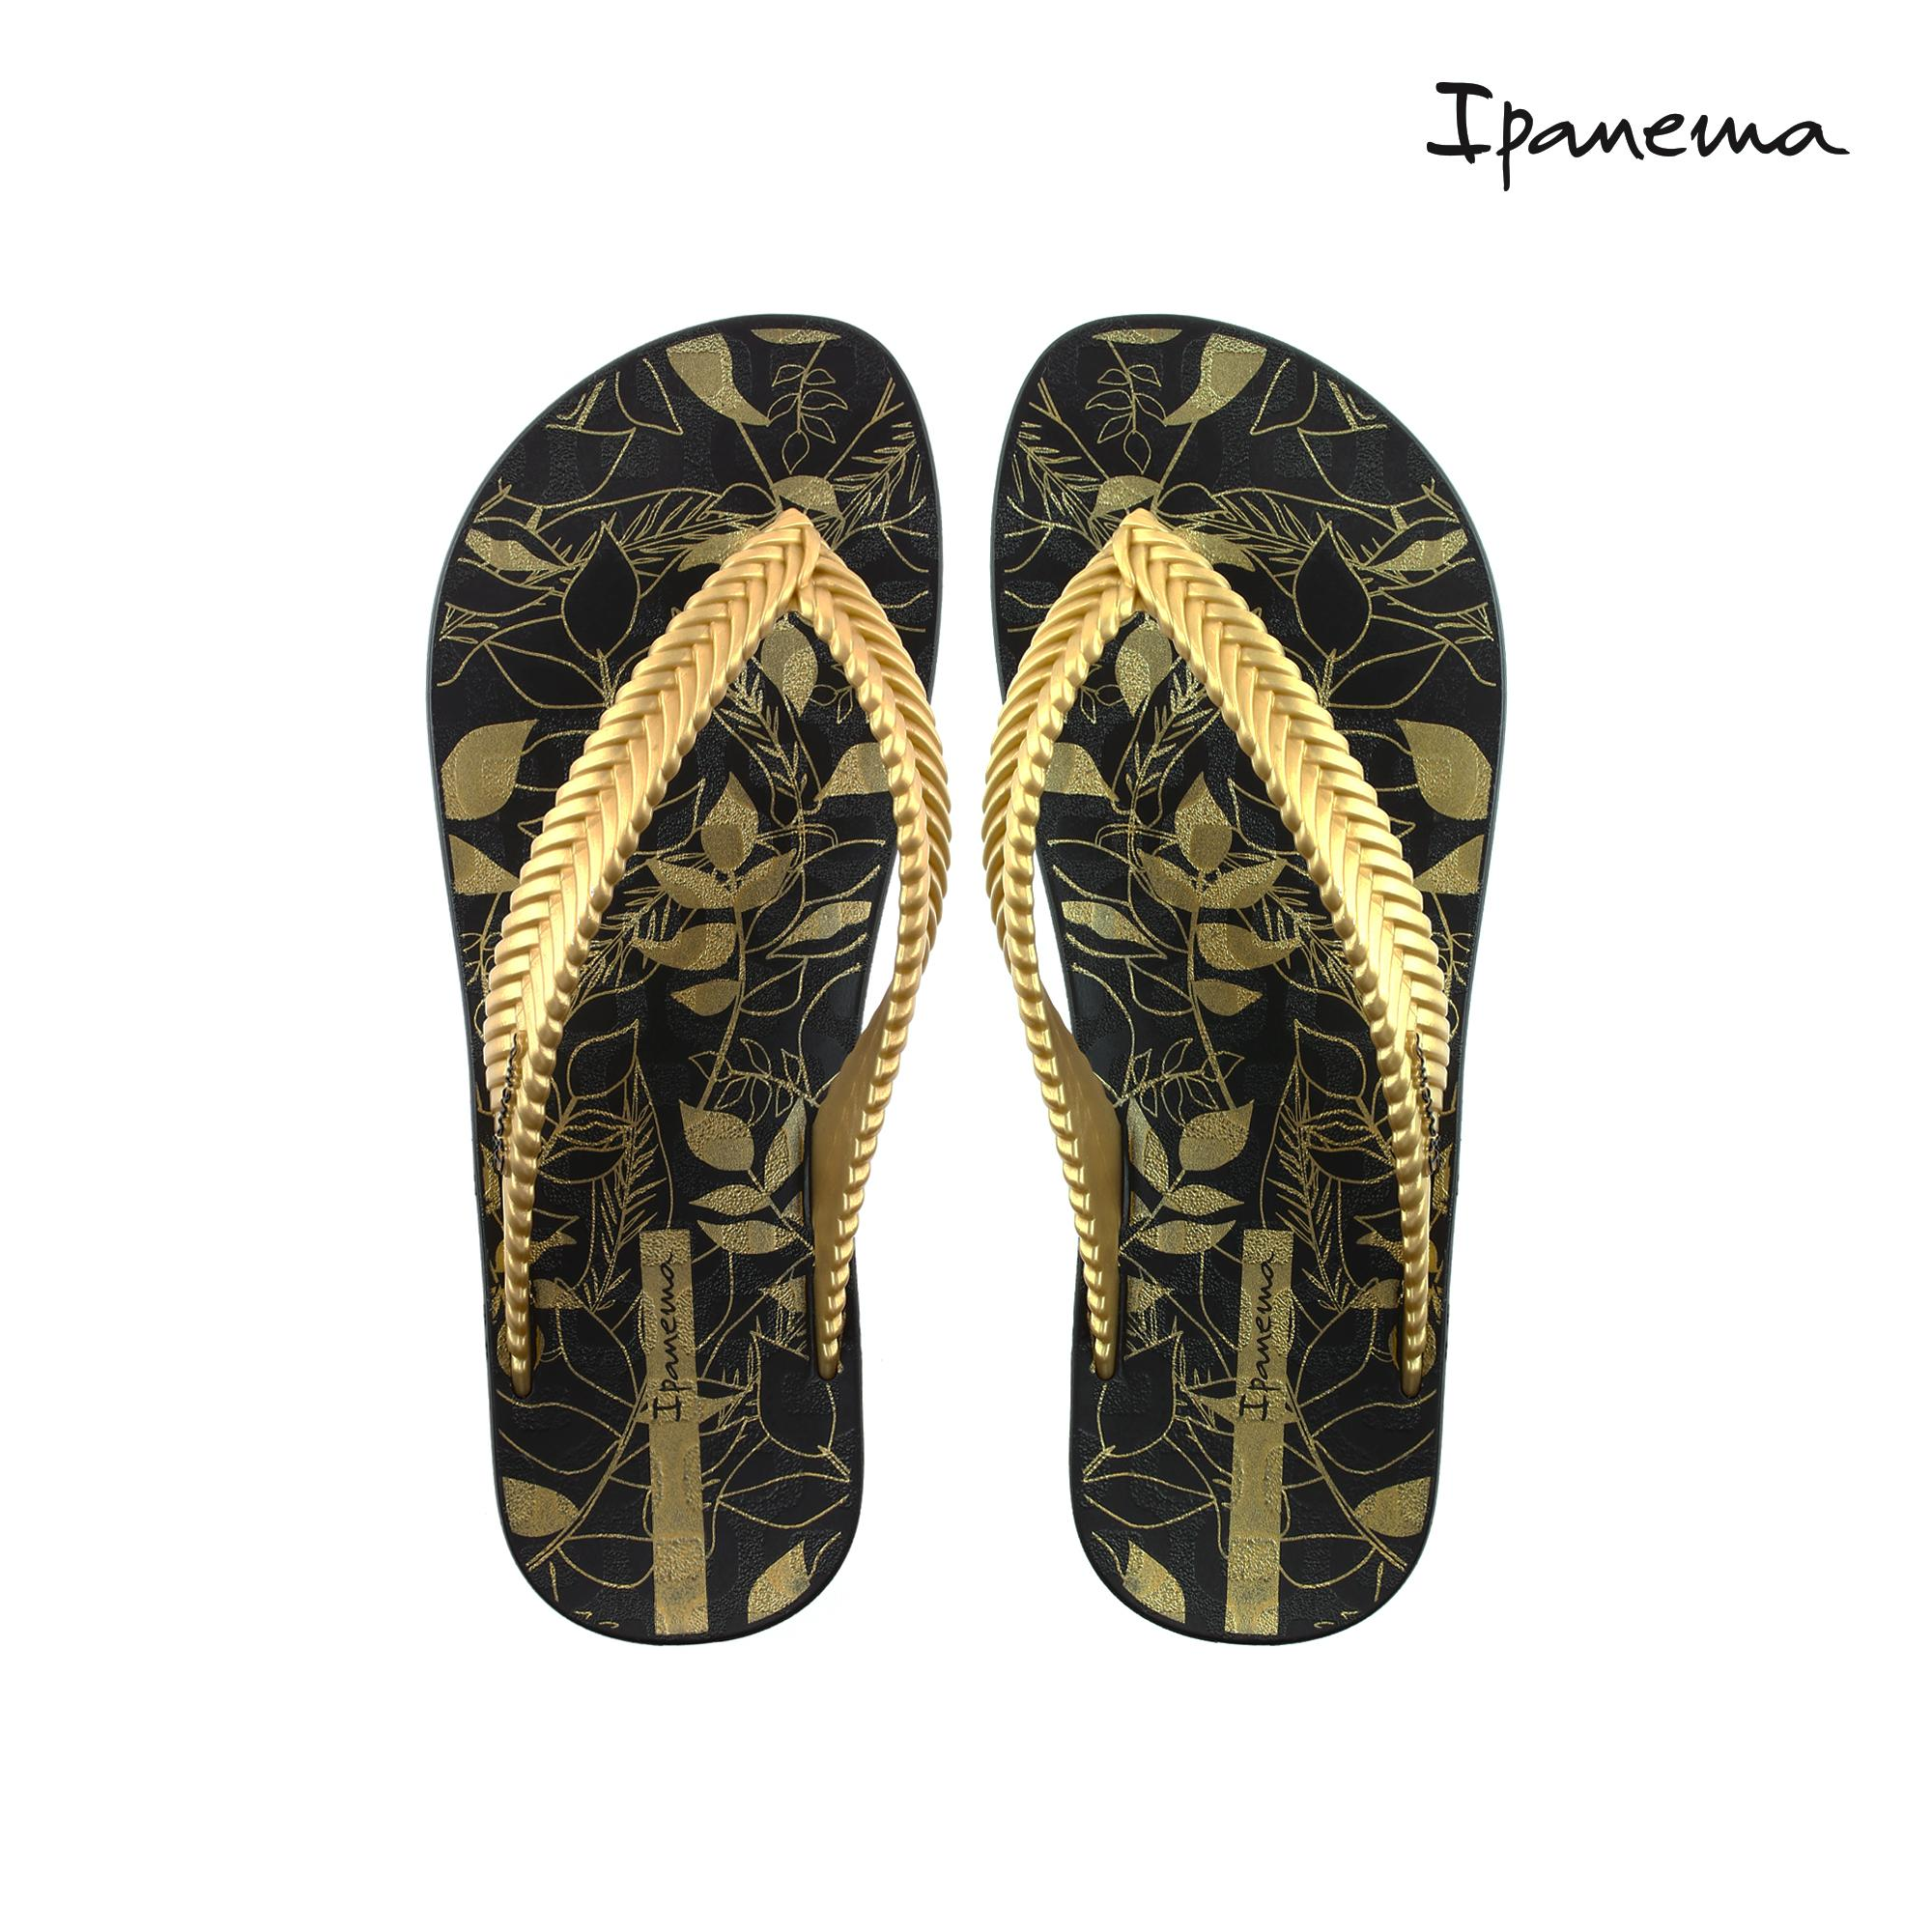 5f1356dc1 Ipanema Philippines  Ipanema price list - Ipanema Flip Flop ...